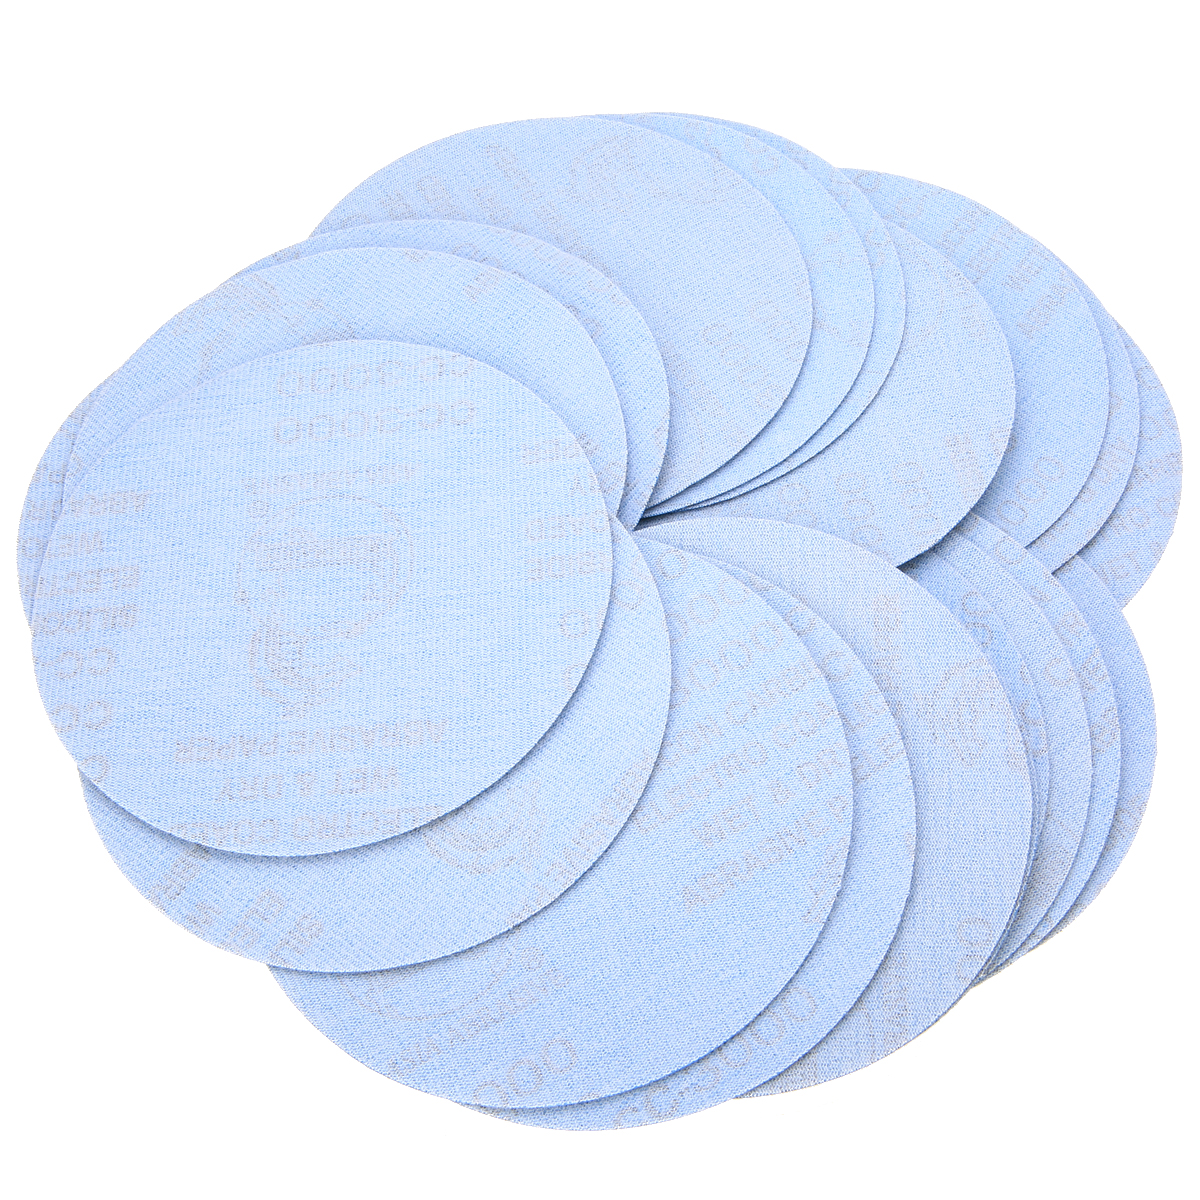 20Pcs 6 Inch 3000 Grit Sanding Discs Polishing Sanding Pad Sandpaper 150mm Grinder Disc For Woodworking Sander Disc